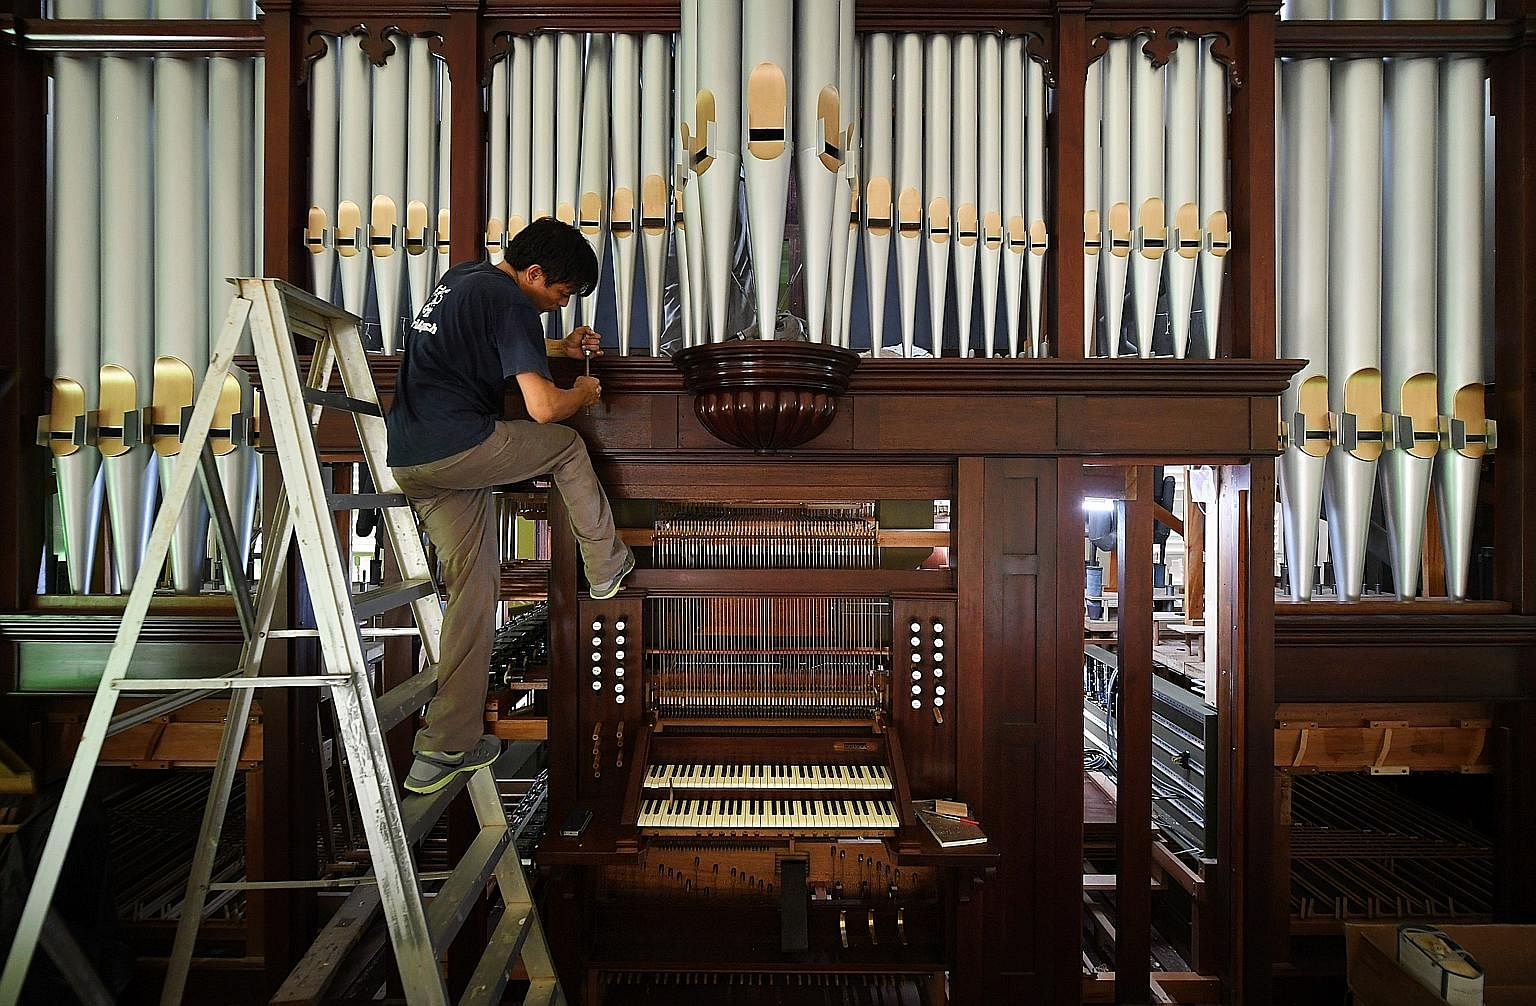 Hark the pipe organ in all its glory singapore news top stories hark the pipe organ in all its glory singapore news top stories the straits times ccuart Image collections